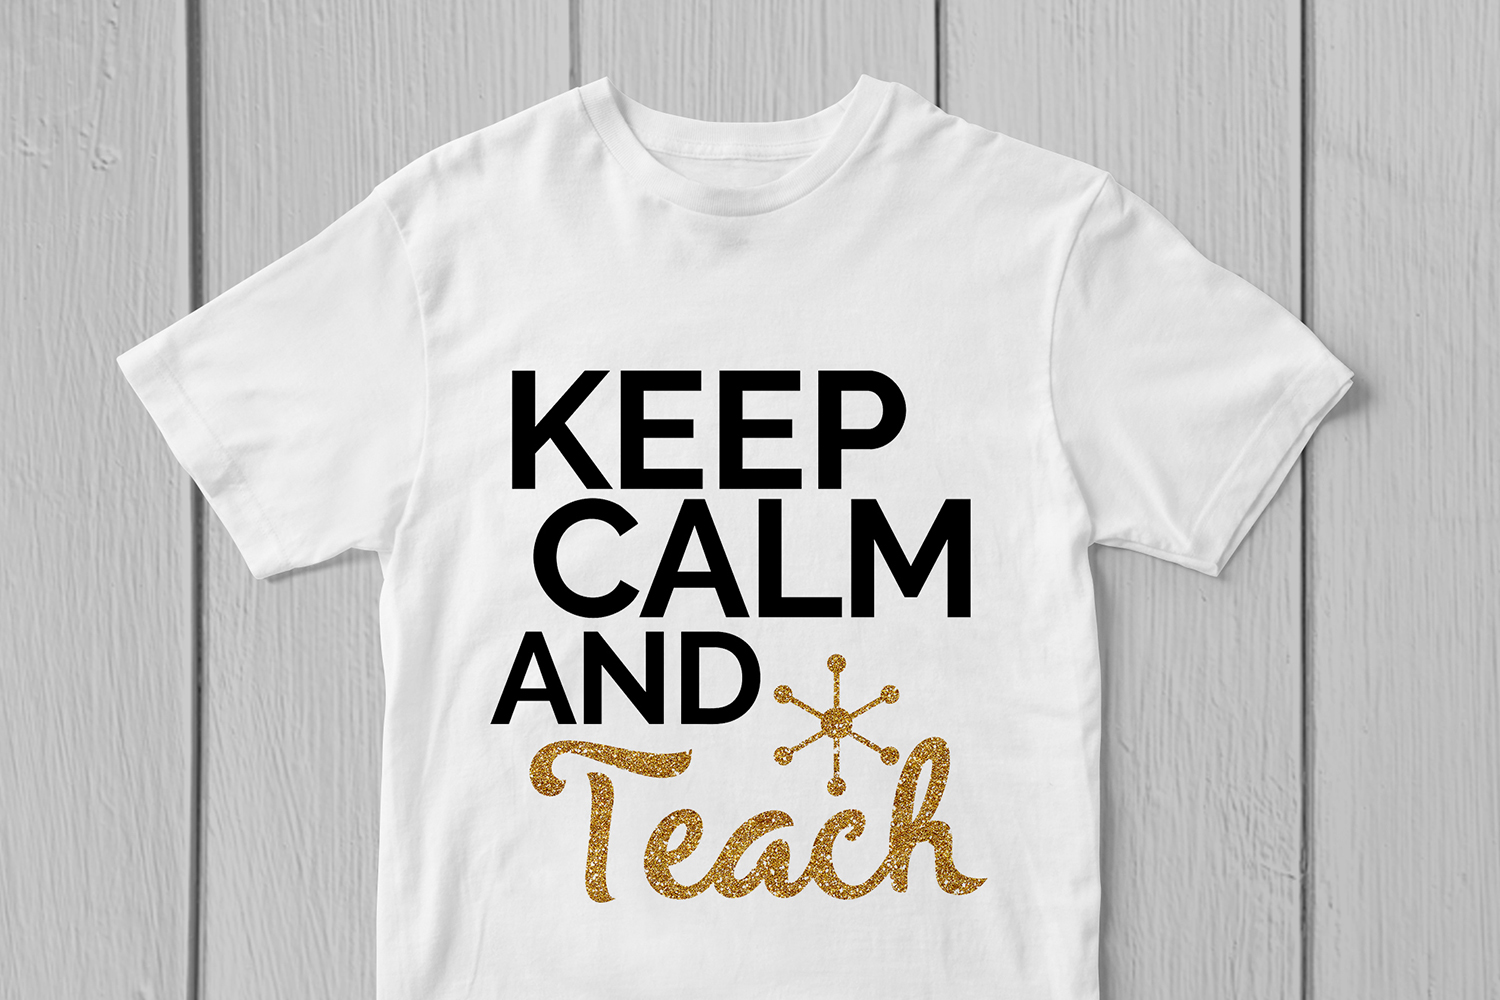 Keep Calm And Teach - Teacher SVG EPS DXF PNG Cutting Files example image 3